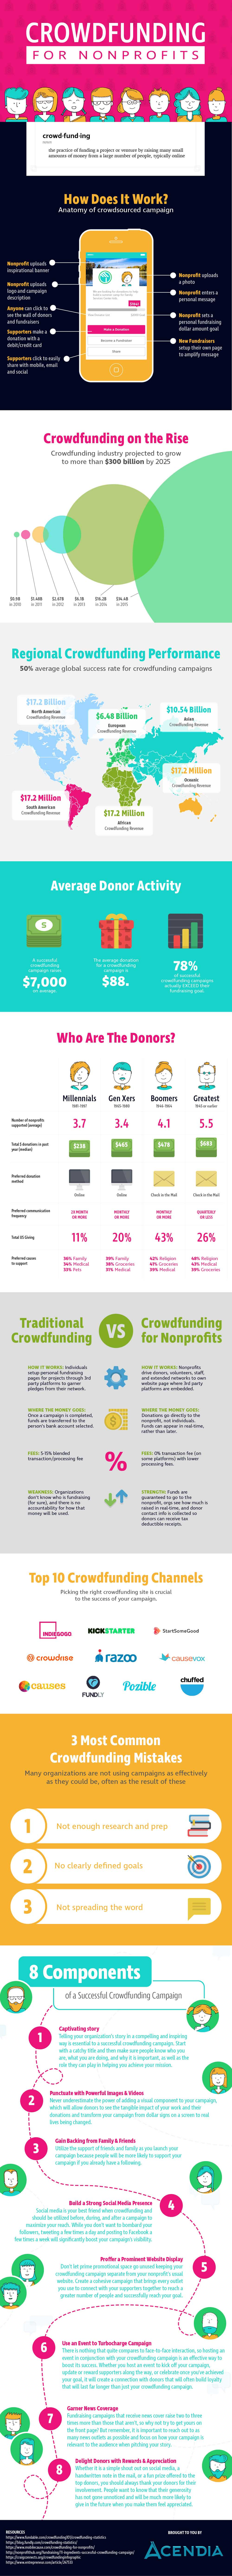 The Quintessential Crowdfunding Guide for Nonprofits